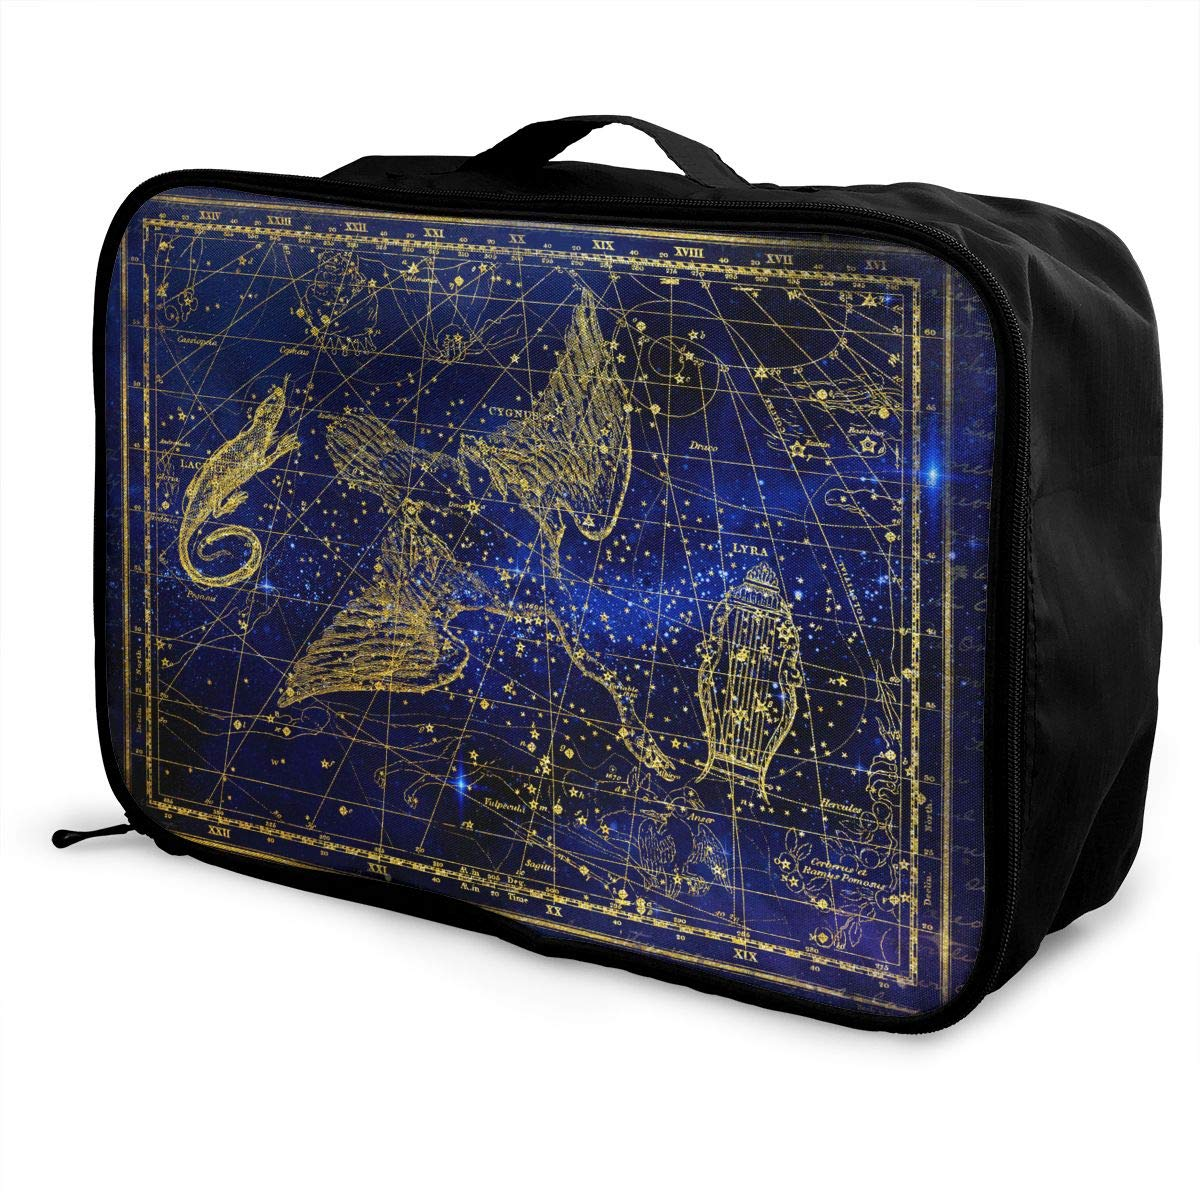 ADGAI Stars Become A Constellation Canvas Travel Weekender Bag,Fashion Custom Lightweight Large Capacity Portable Luggage Bag,Suitcase Trolley Bag